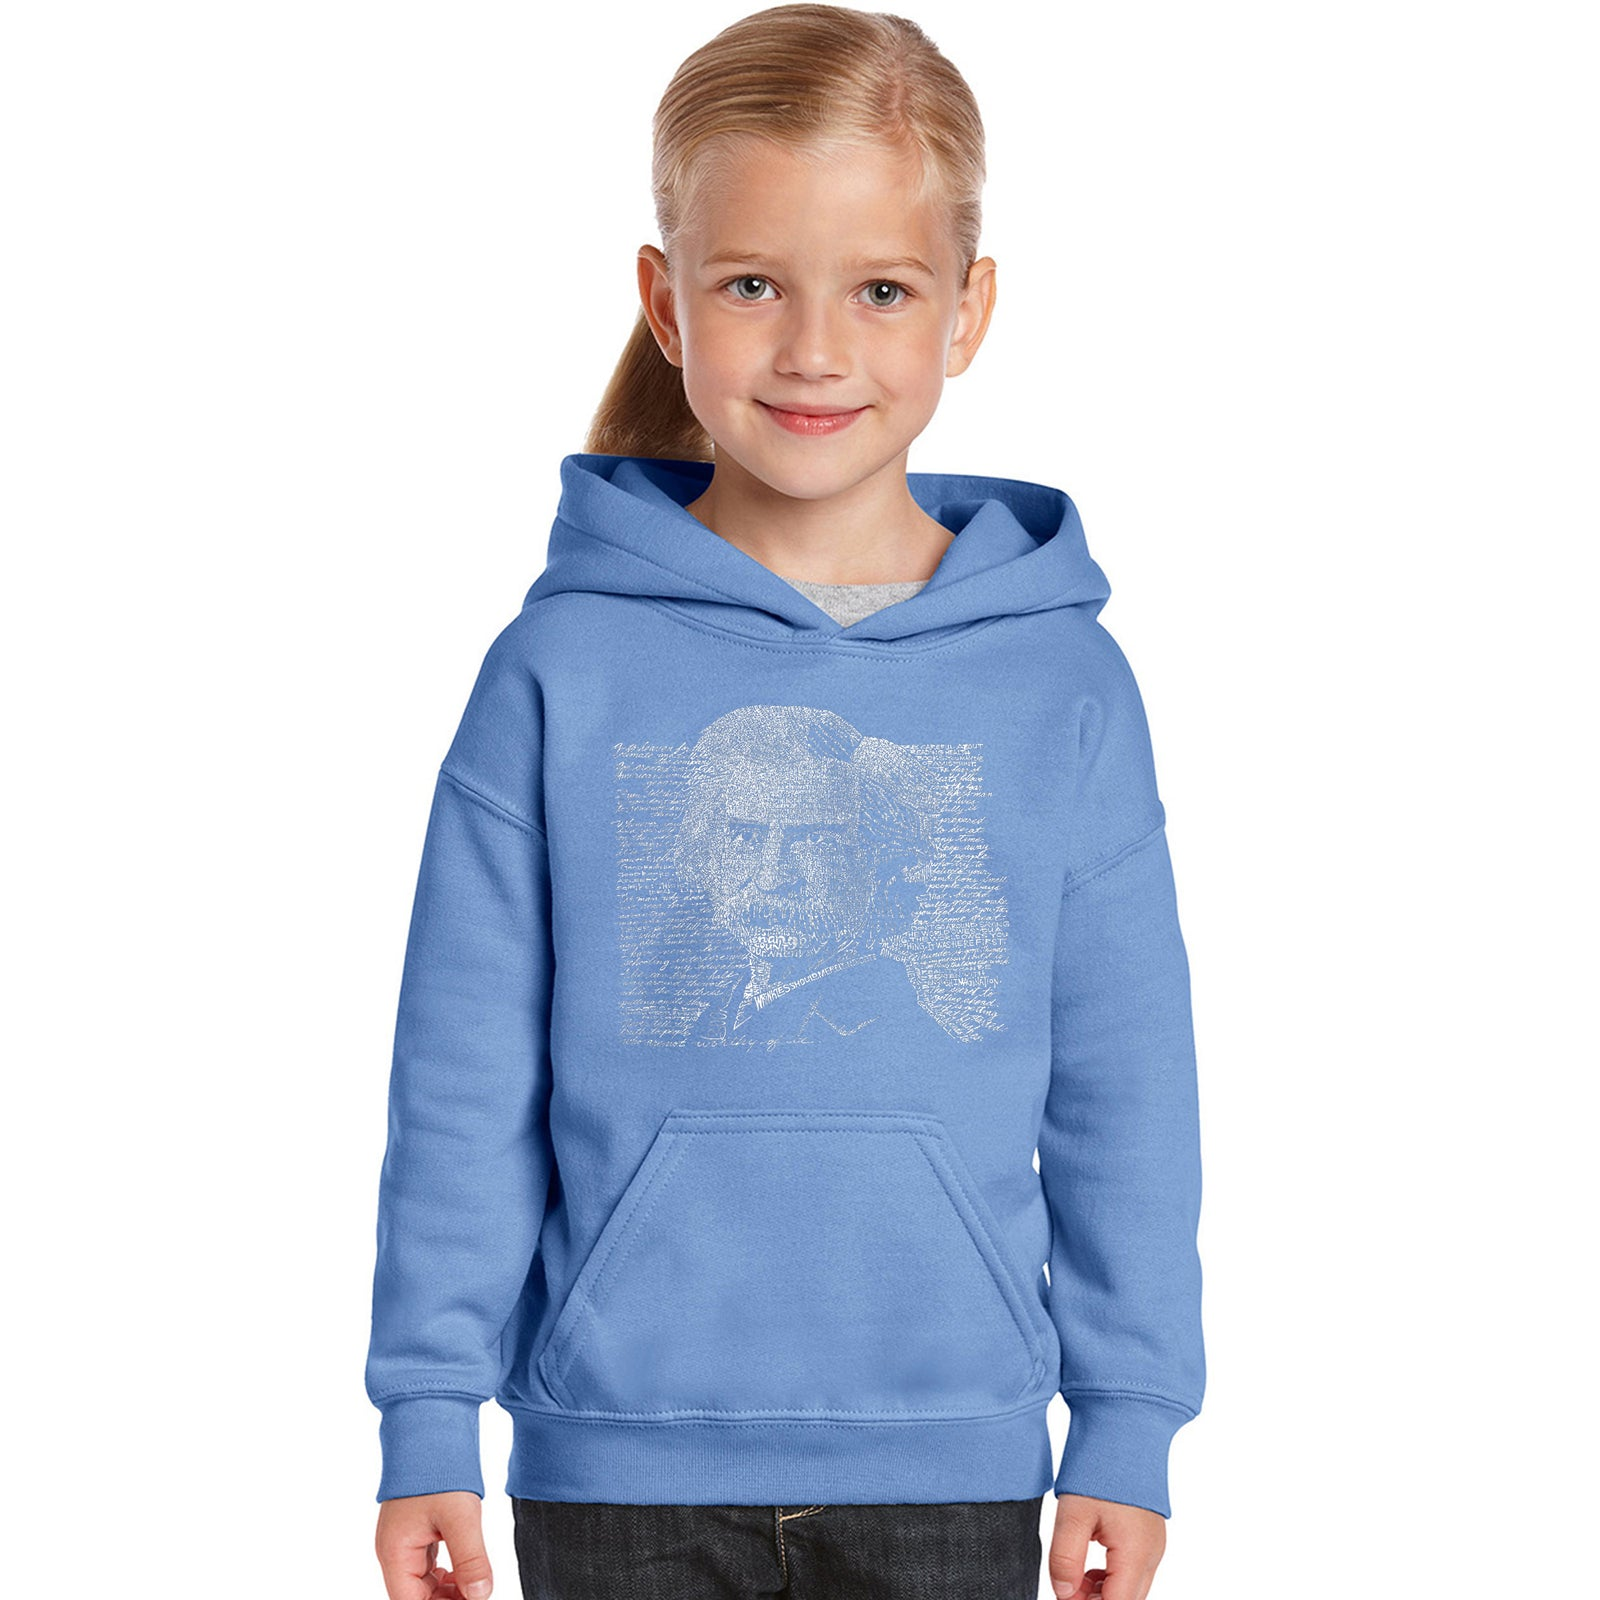 Girl's Hooded Sweatshirt - Mark Twain